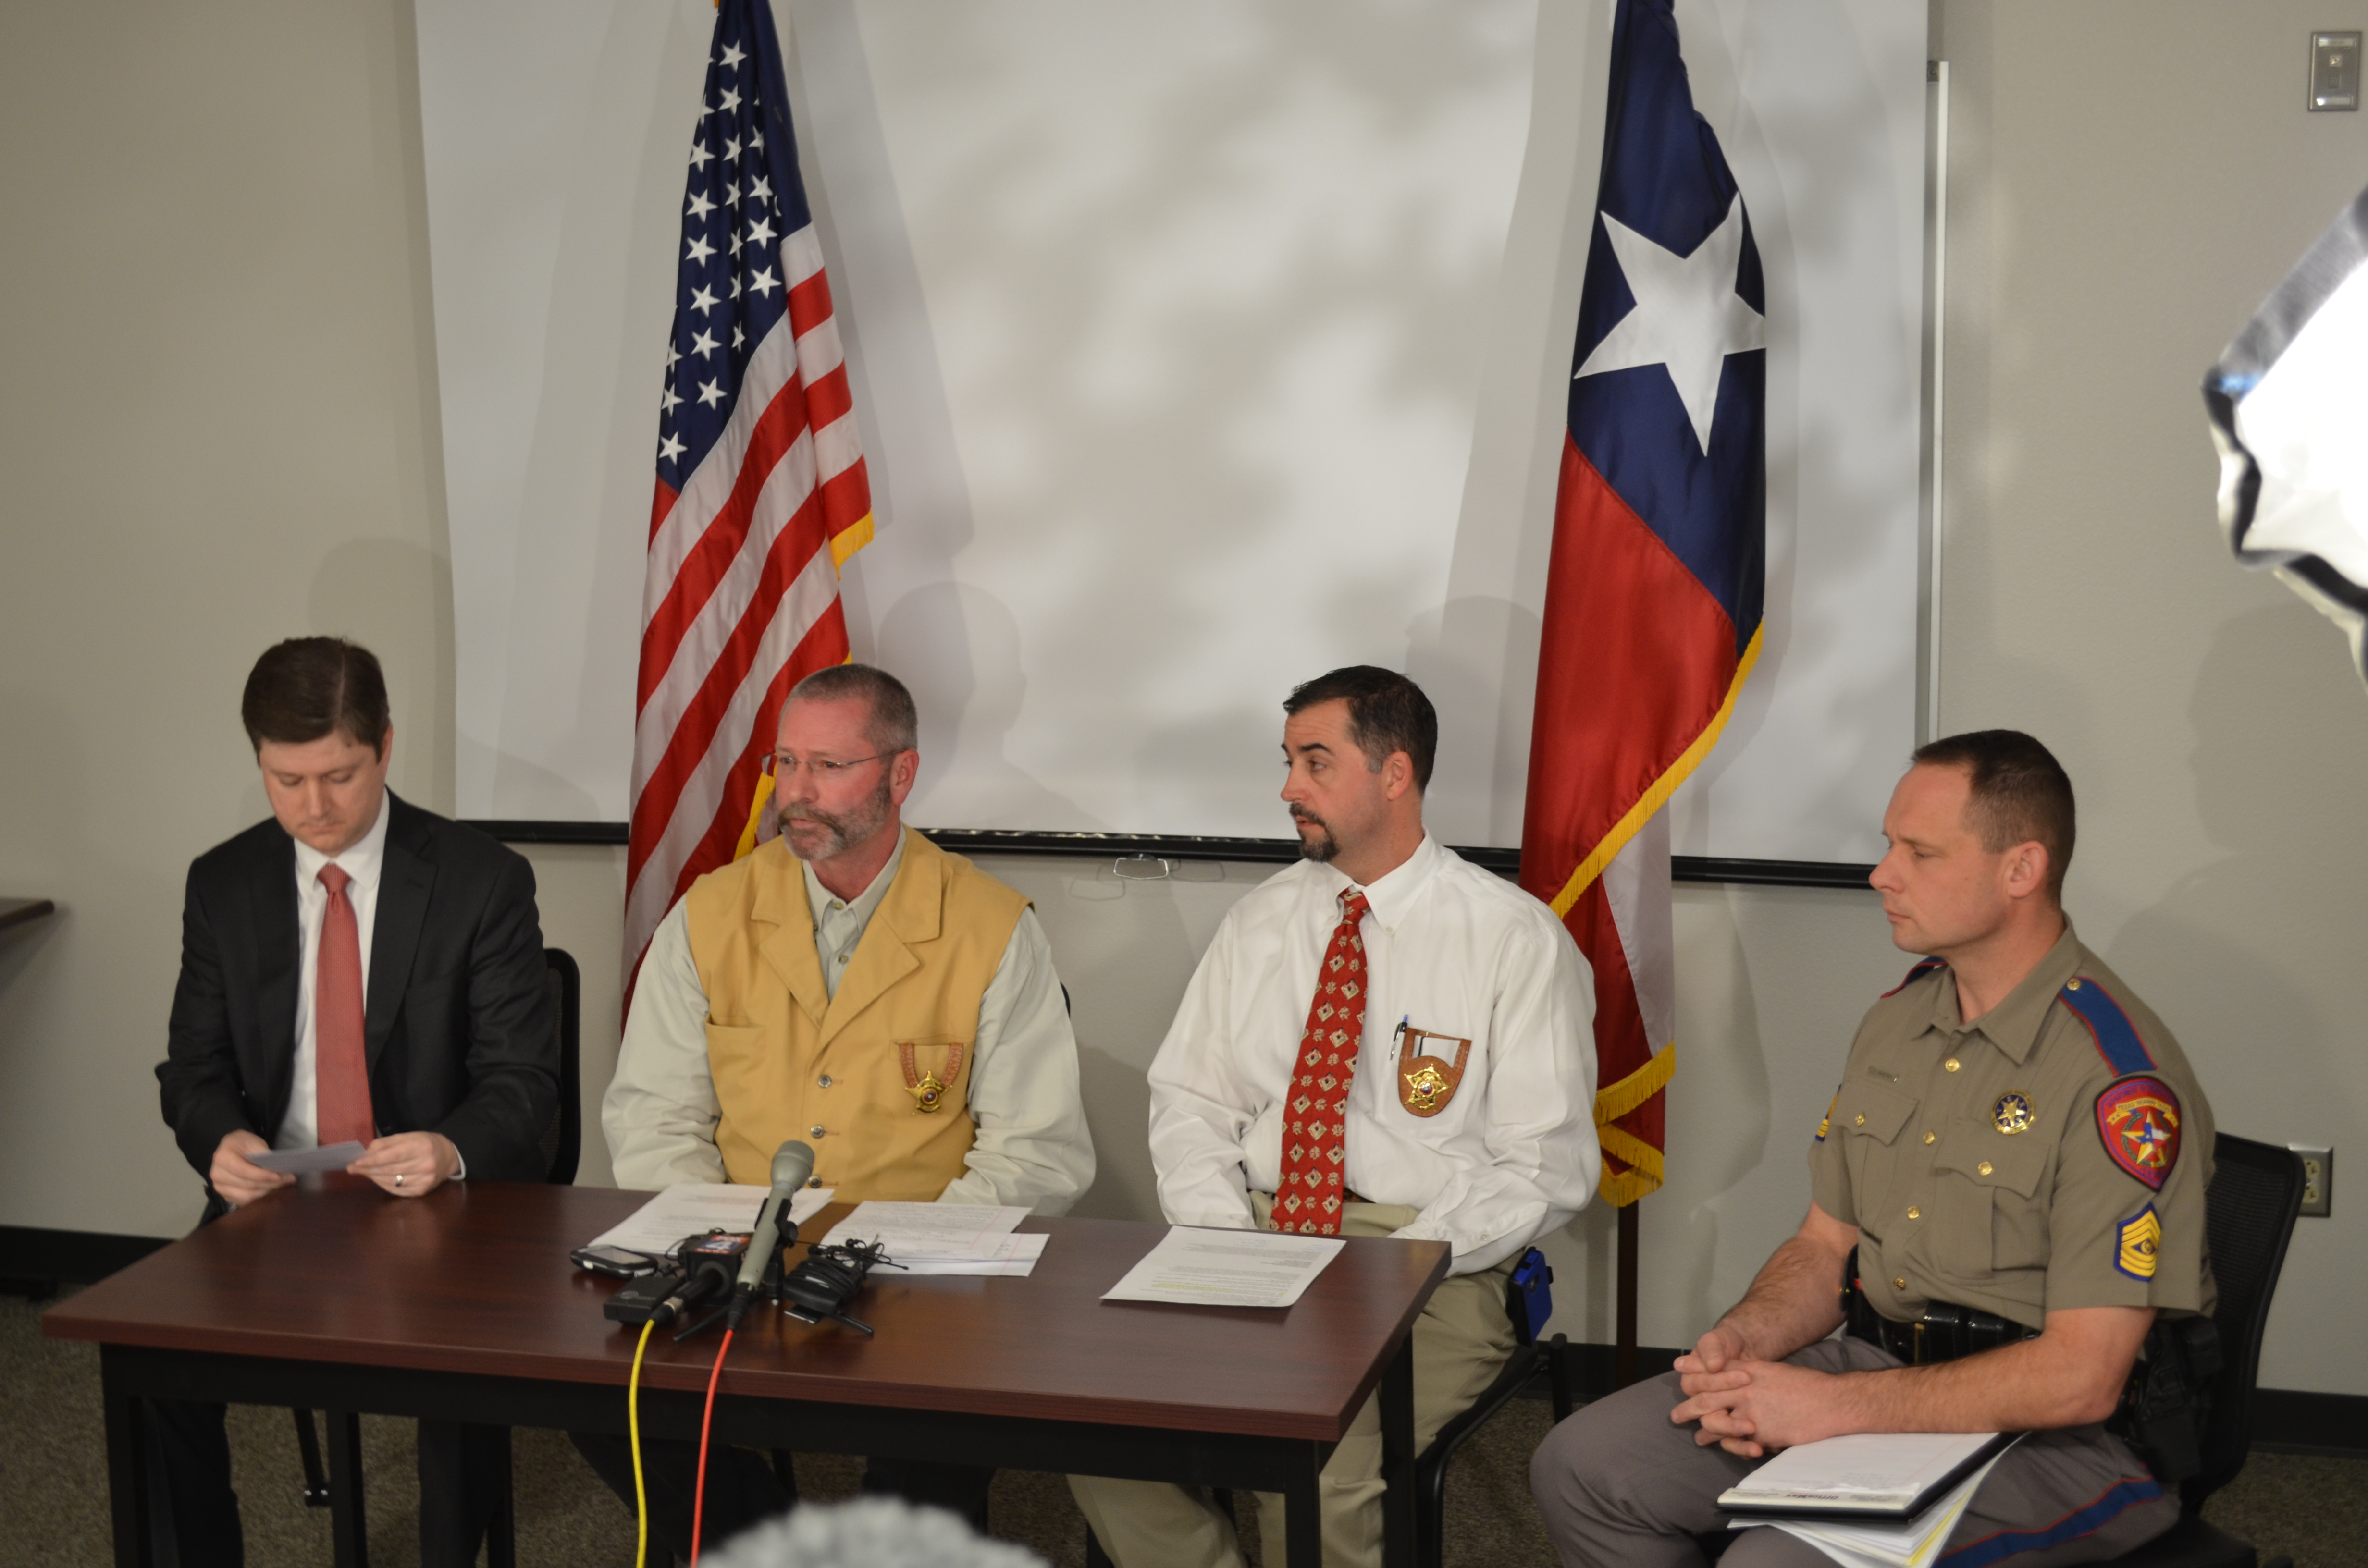 Erath County Sheriff's Office holds a press conference discussing the murders of Chris Kyle, 38, and Chad Littlefield, 35. At the desk are (from left) Erath Co. District Attorney Alan Nash, Sheriff Tommy Bryant, Captain Jason Upshaw, State Trooper Lonny Haschel. (Landon Haston, Texan News Service)